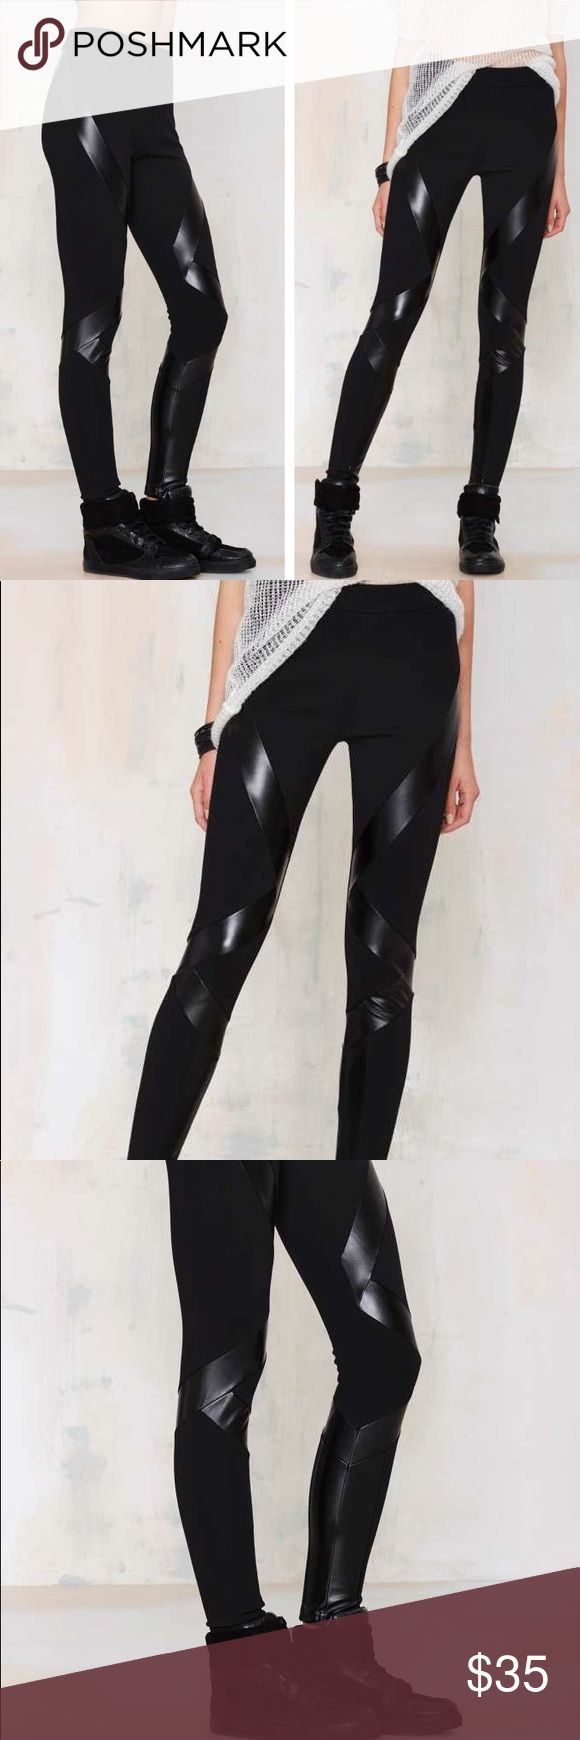 """Nast Gal • Leather Zone Out leggings Nasty Gal faux leather detailed """"Zone Out"""" leggings. Size S. Features cross cross vegan leather detail across and down the leggings. Thick material. Stretchy. Nasty Gal Pants Leggings"""